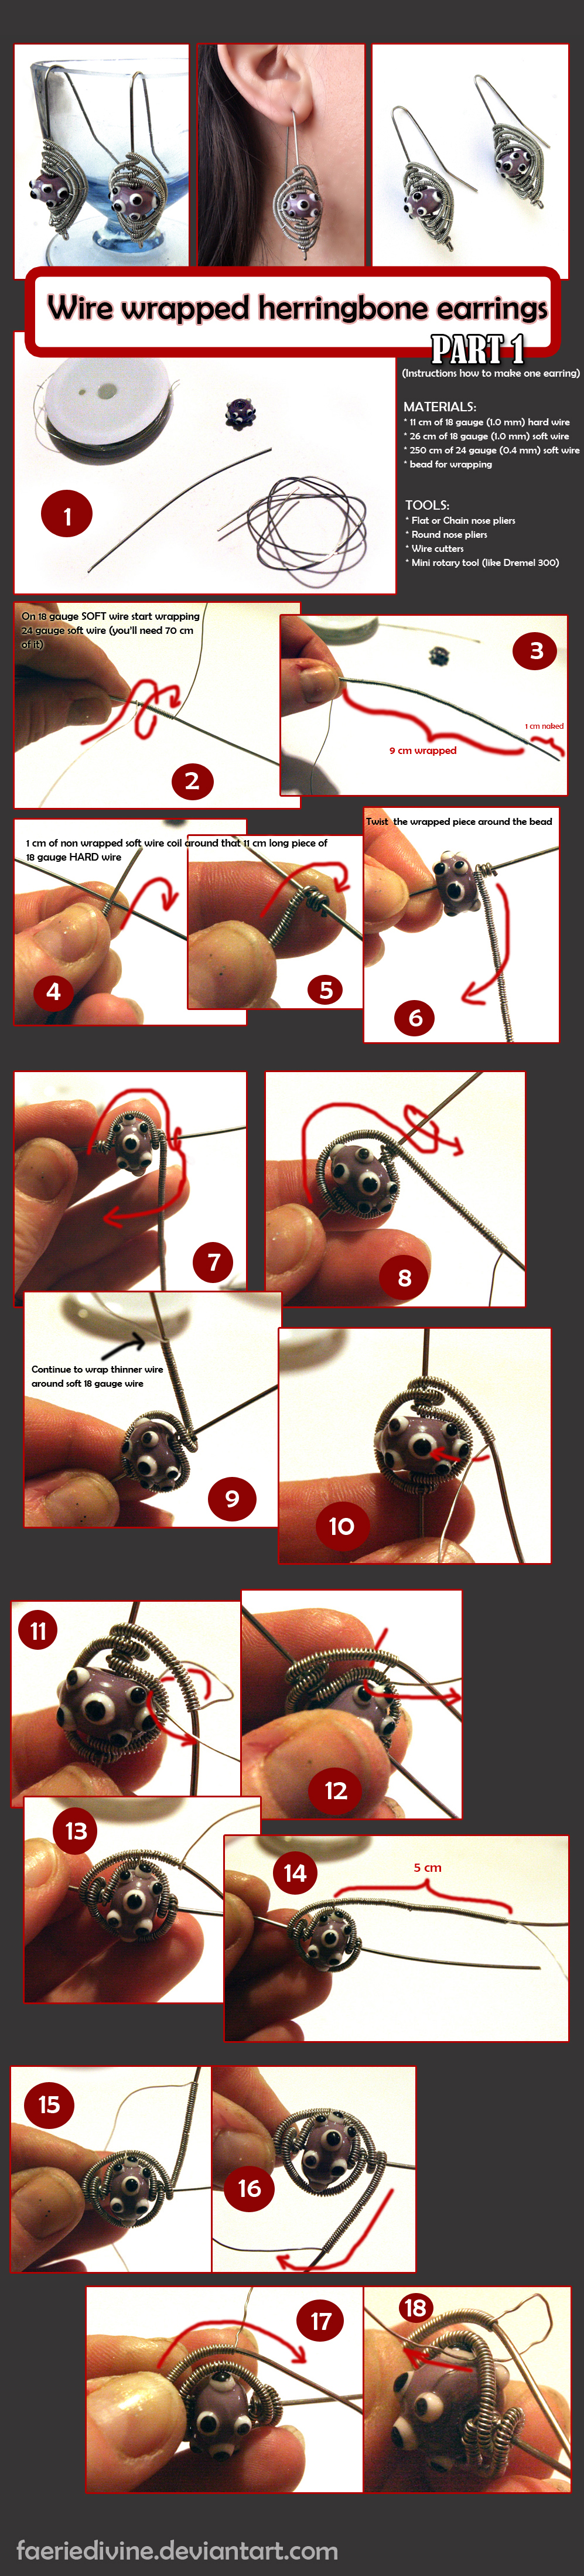 TUTORIAL - Wirewrapped herringbone earrings PT1 by Faeriedivine